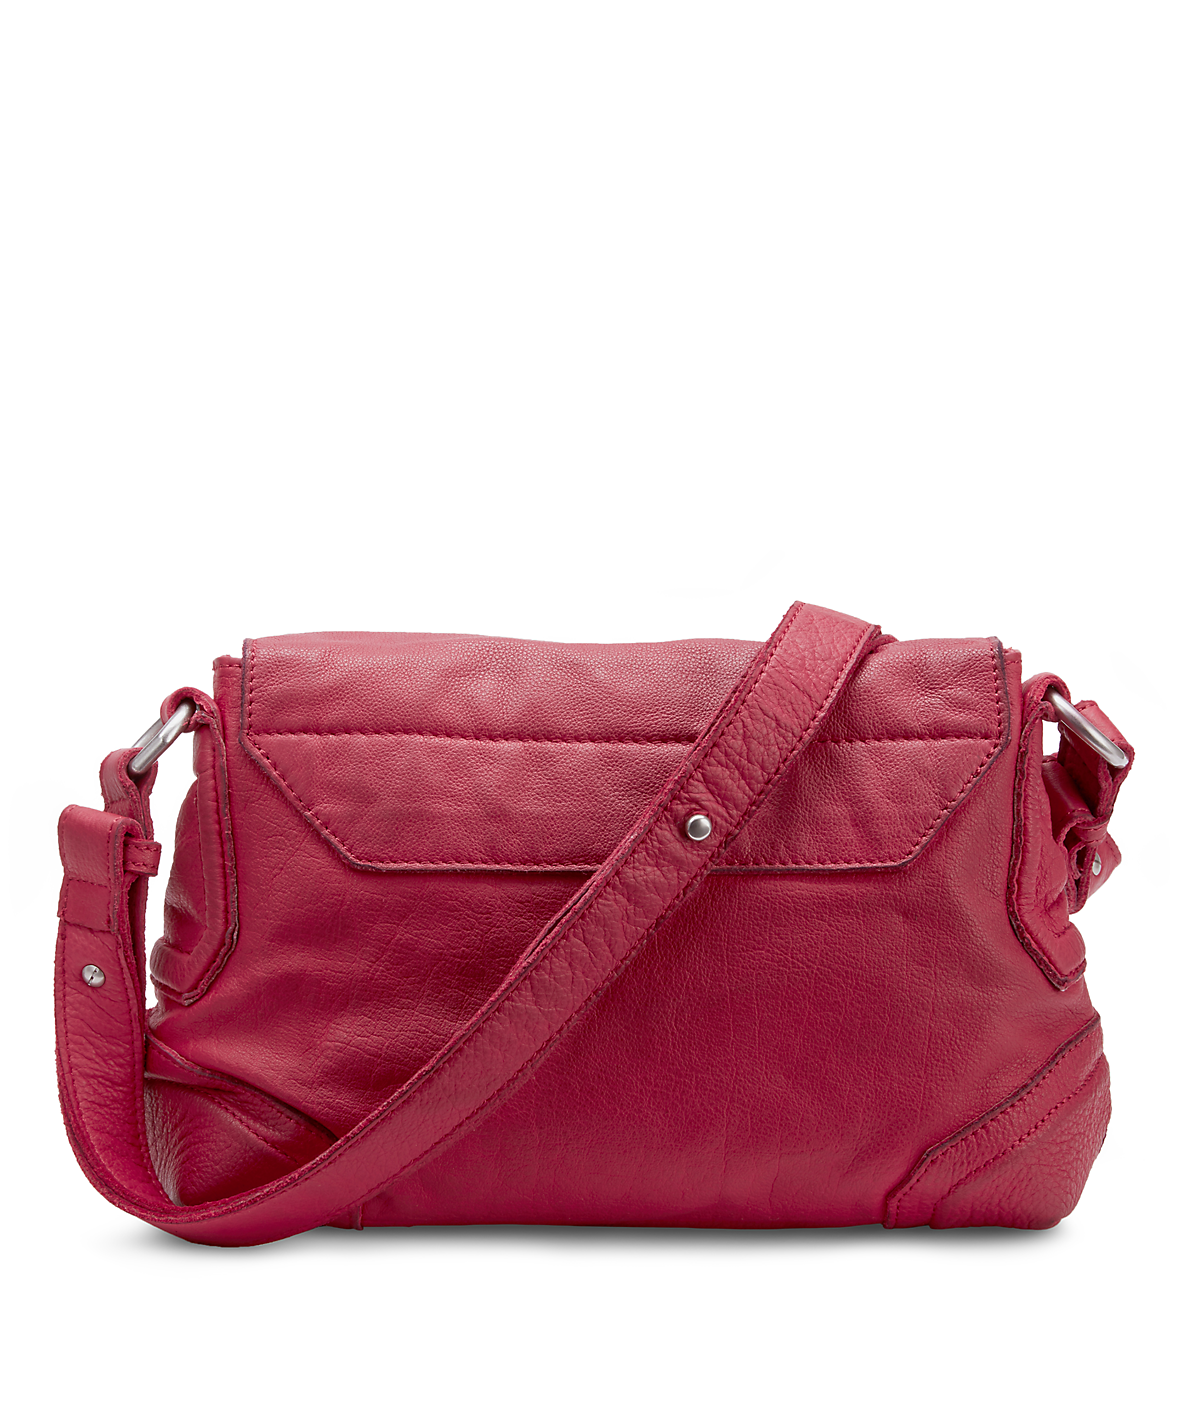 Saporo shoulder bag from liebeskind